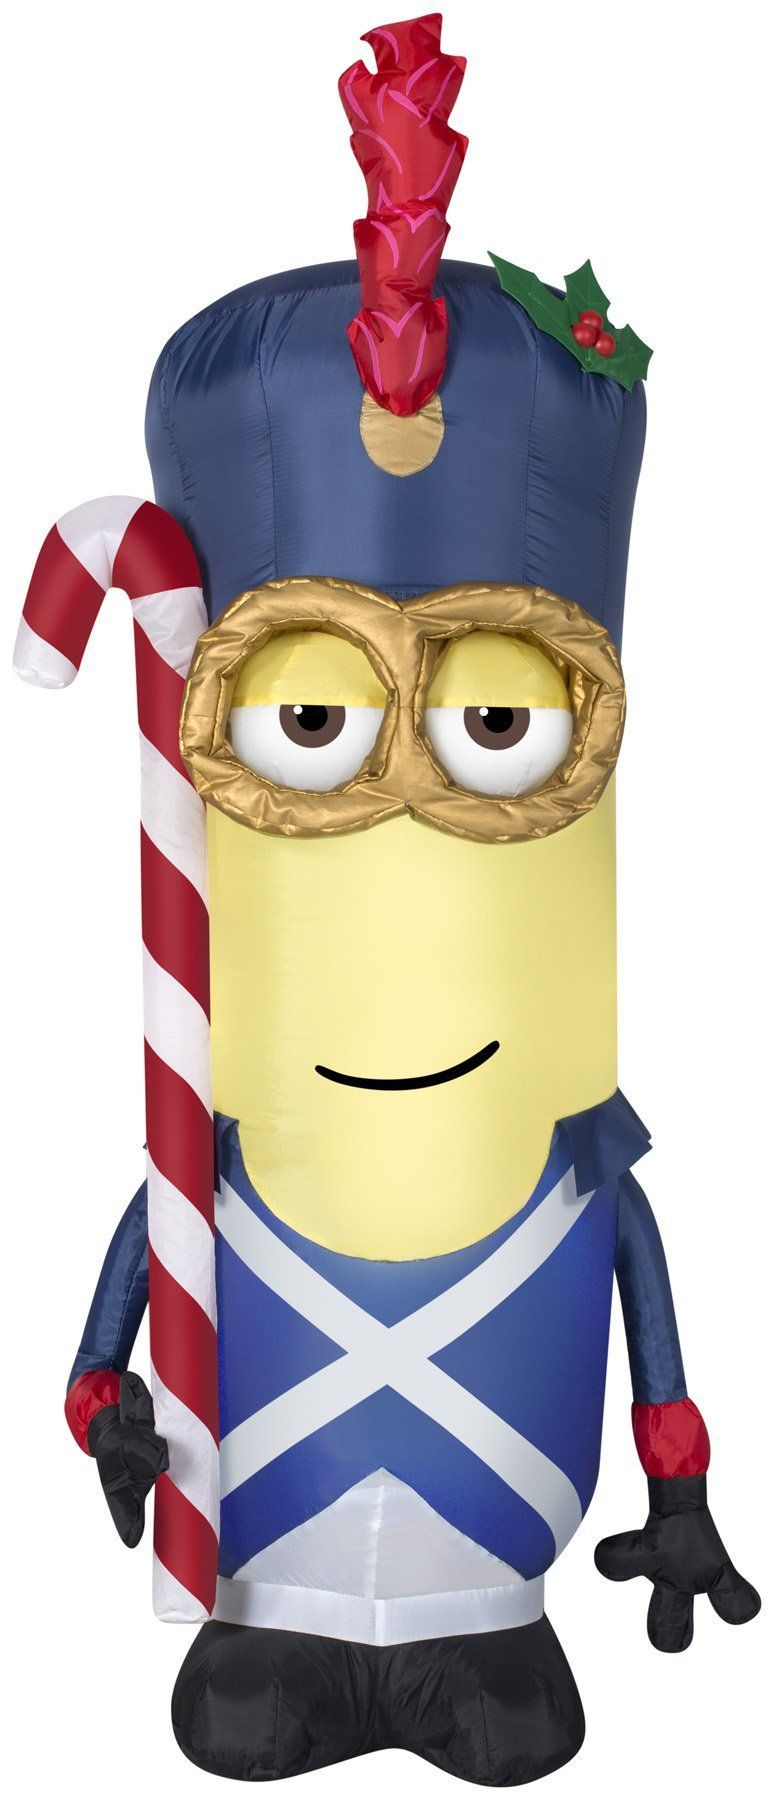 2 british soldier minion christmas inflatable - Minion Christmas Inflatable